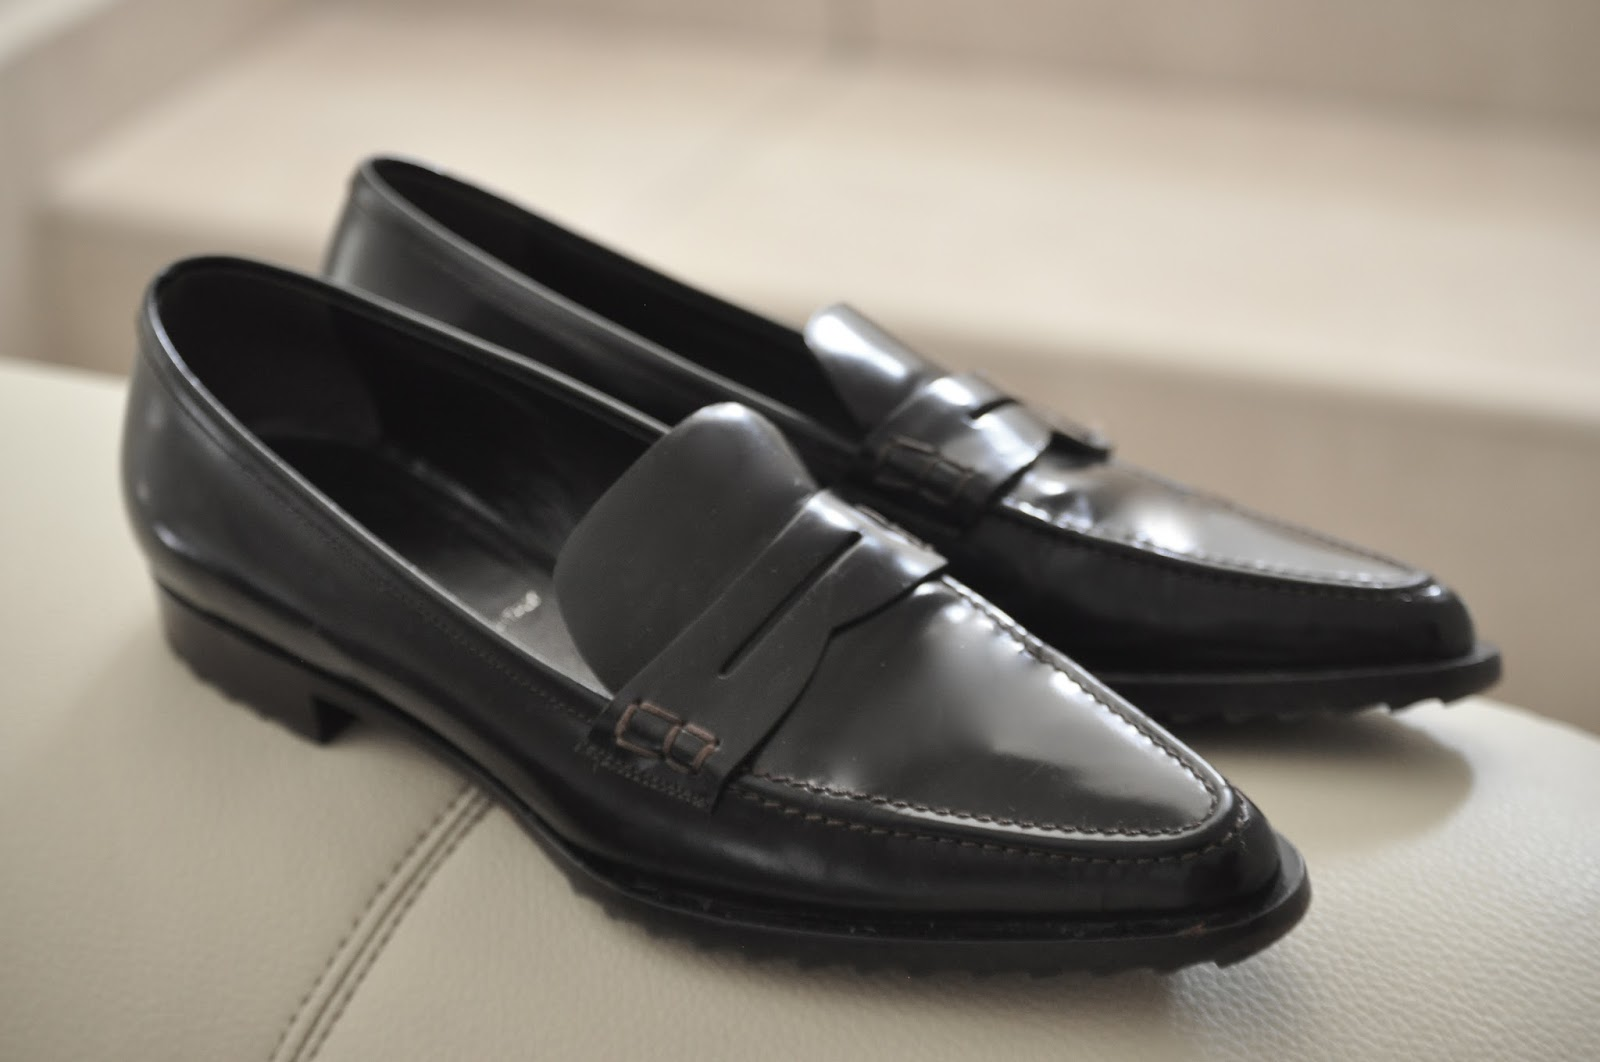 Jil Sander pointed toe loafers